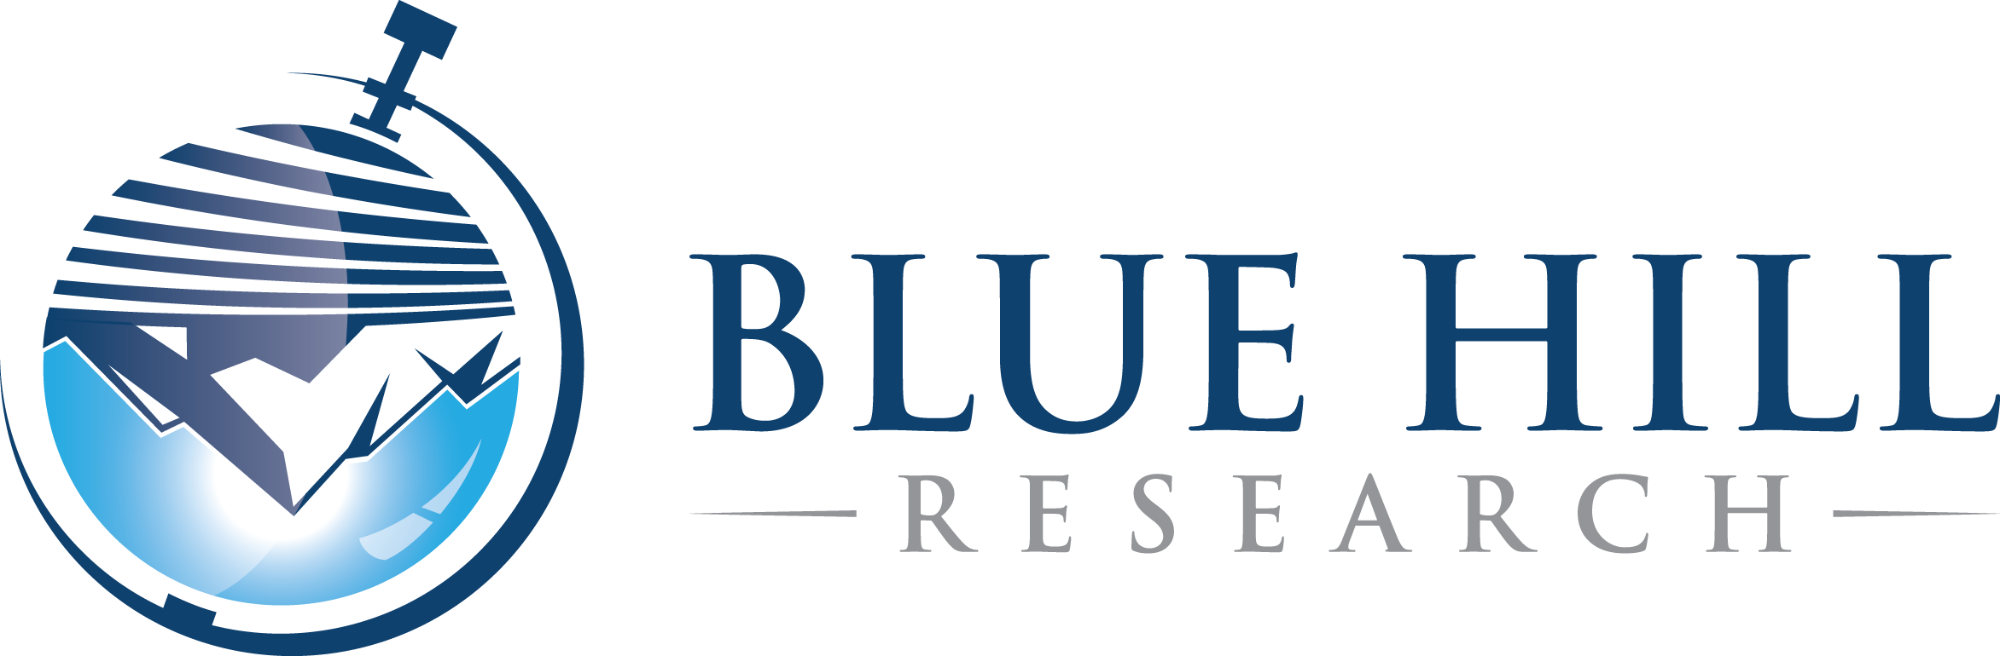 Blue Hill Research Logo.png